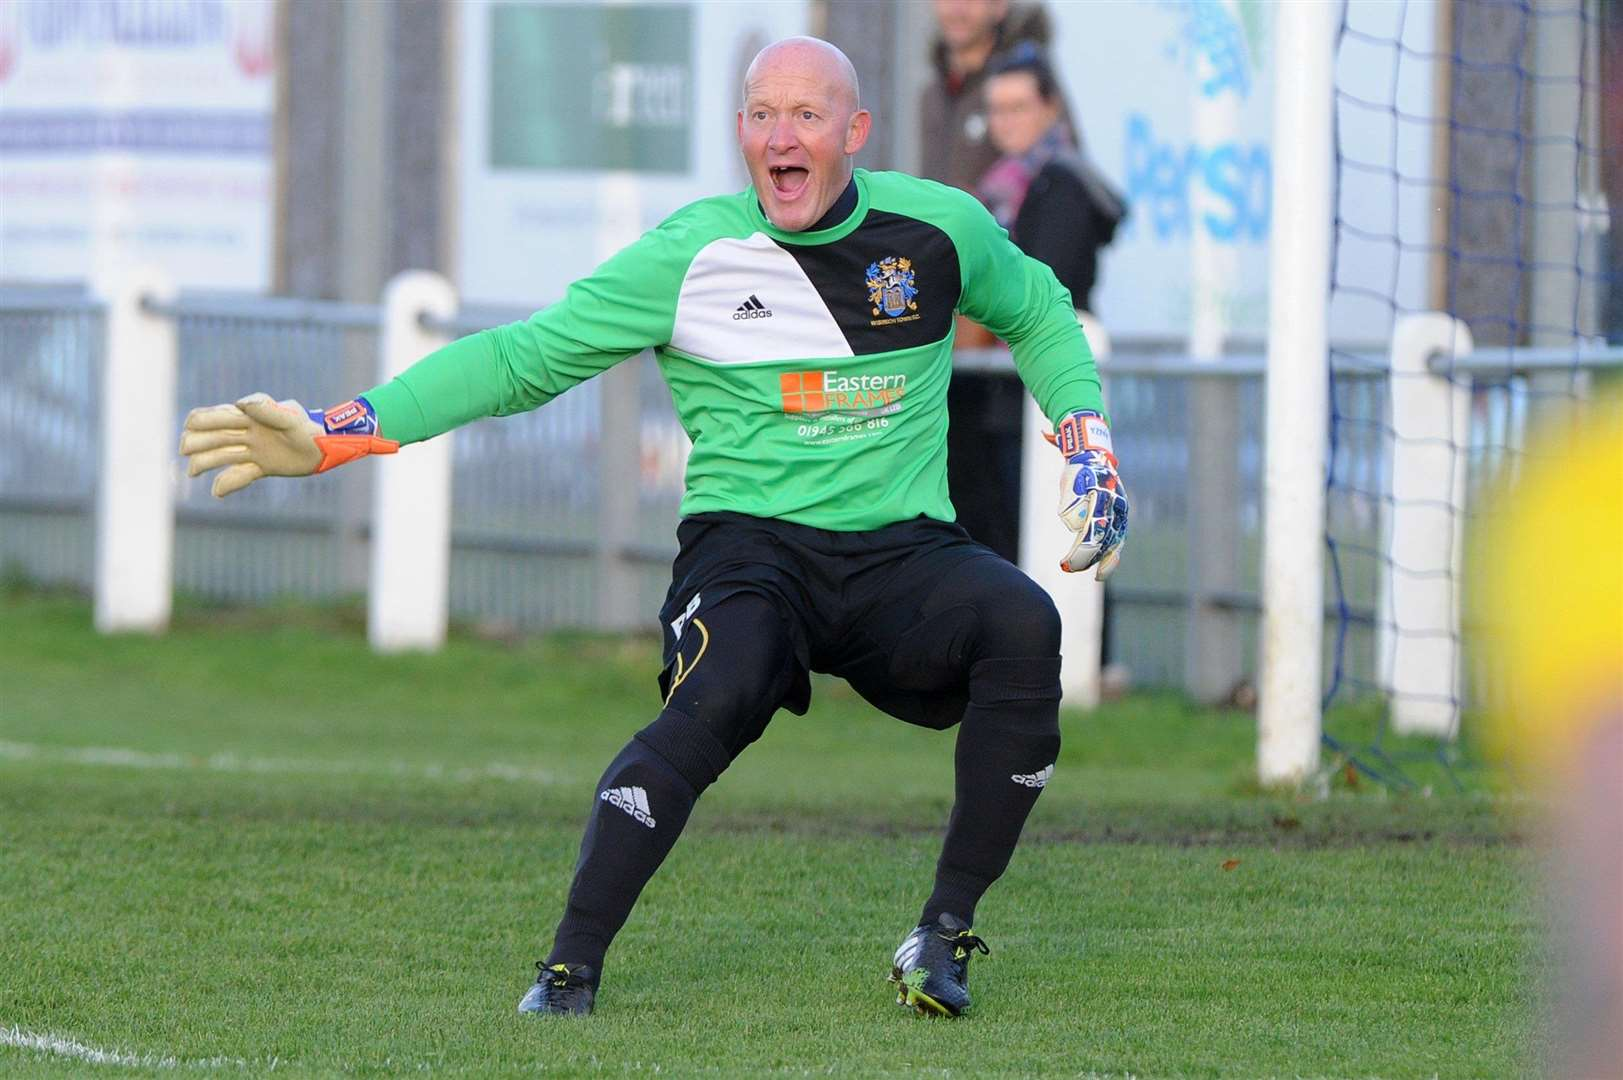 Goalkeeper Paul Bastock in action for Wisbech Town when he overtook Peter Shilton's record for 1,249 competitive club appearances against Thetford Town ....PICTURE: Mecha Morton.